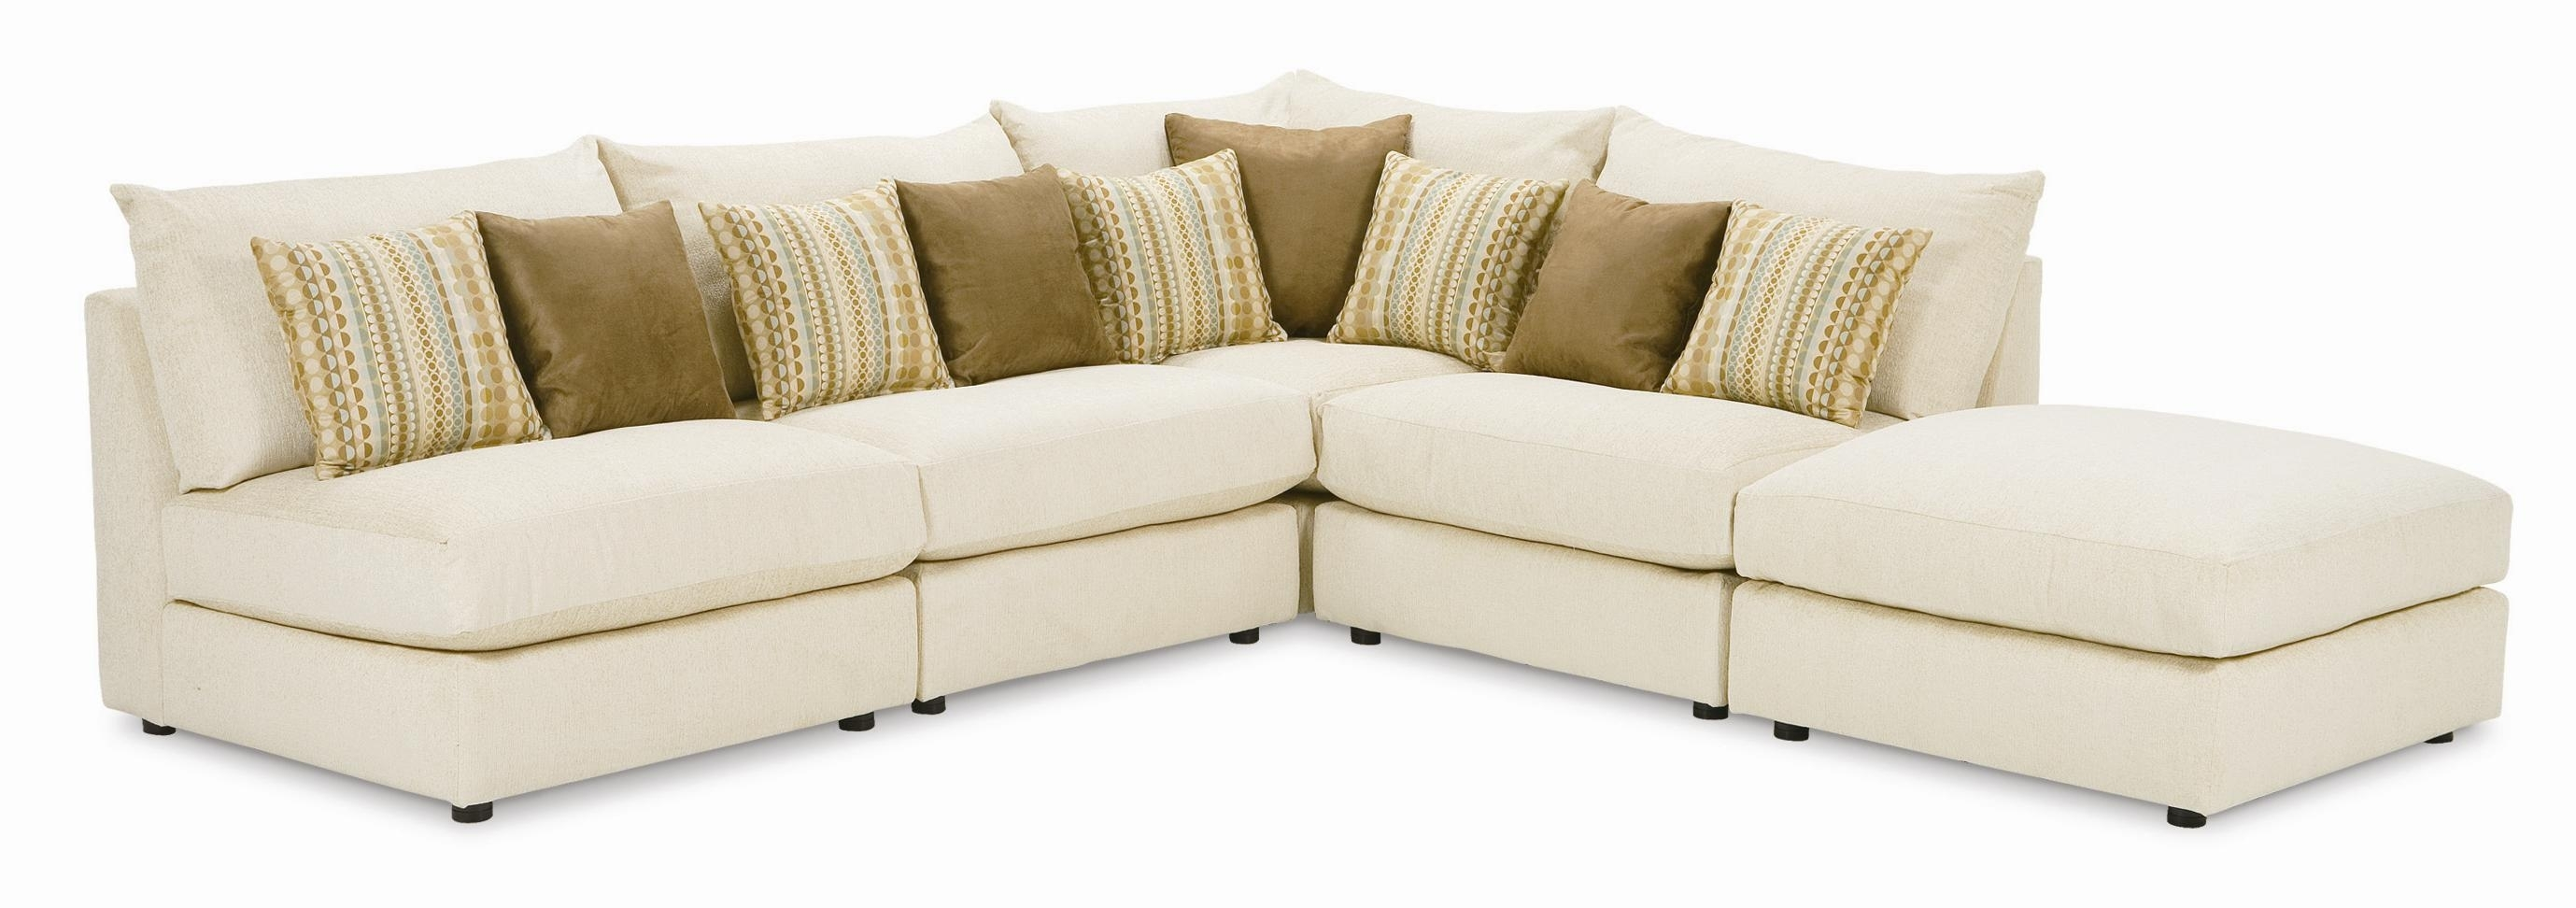 Cool Armless Sectional Sofa , Epic Armless Sectional Sofa 53 On Throughout Small Armless Sofas (View 8 of 10)